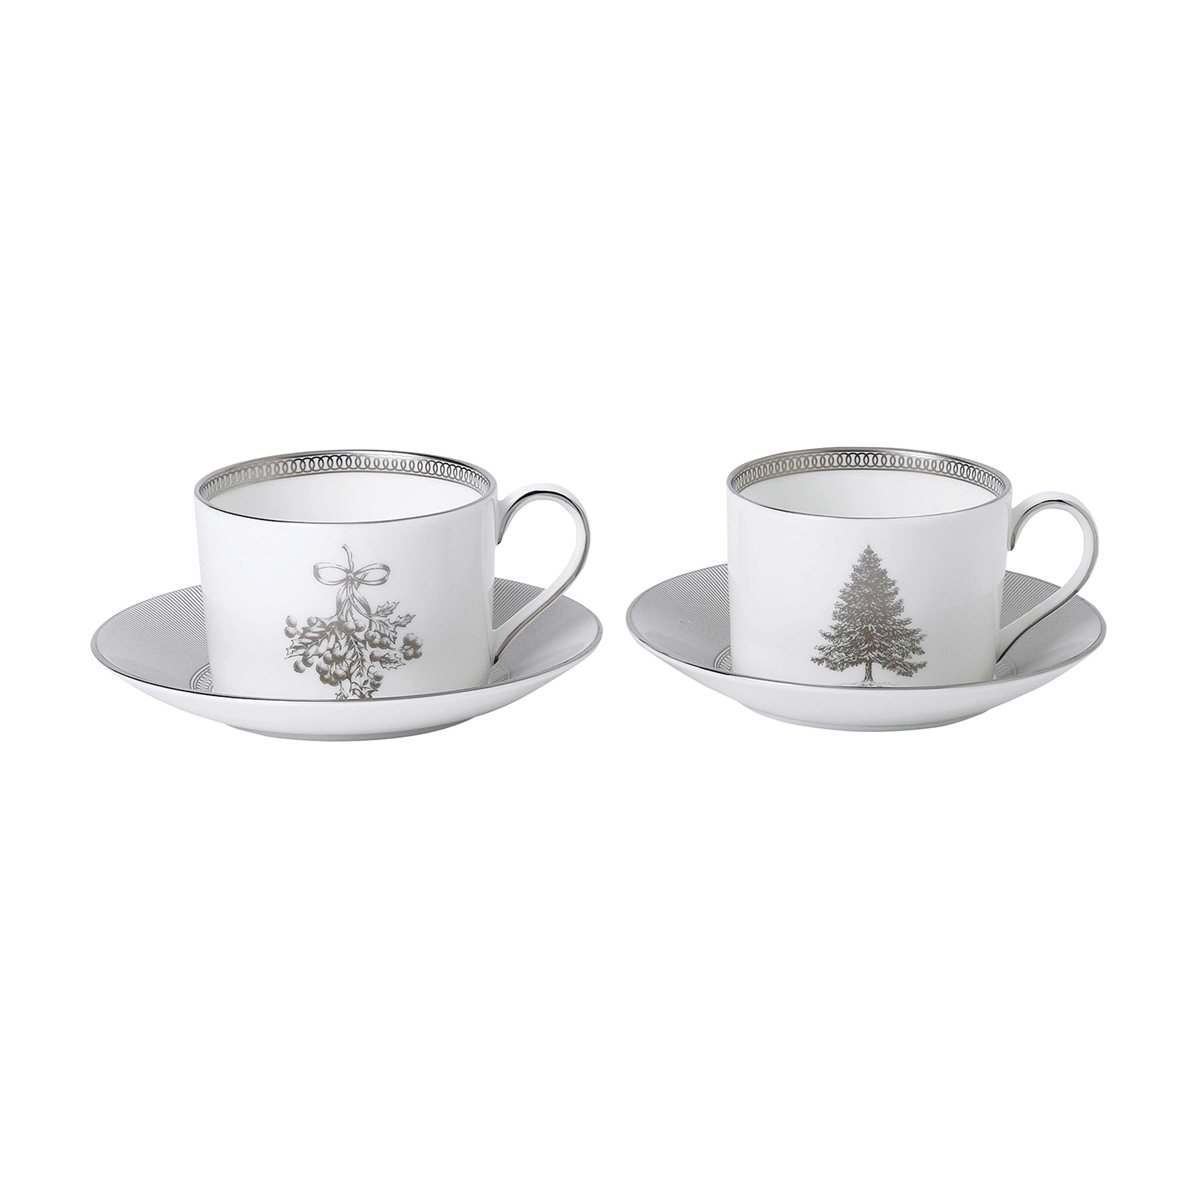 Wedgwood 2021 Winter White Teacup and Saucer Pair